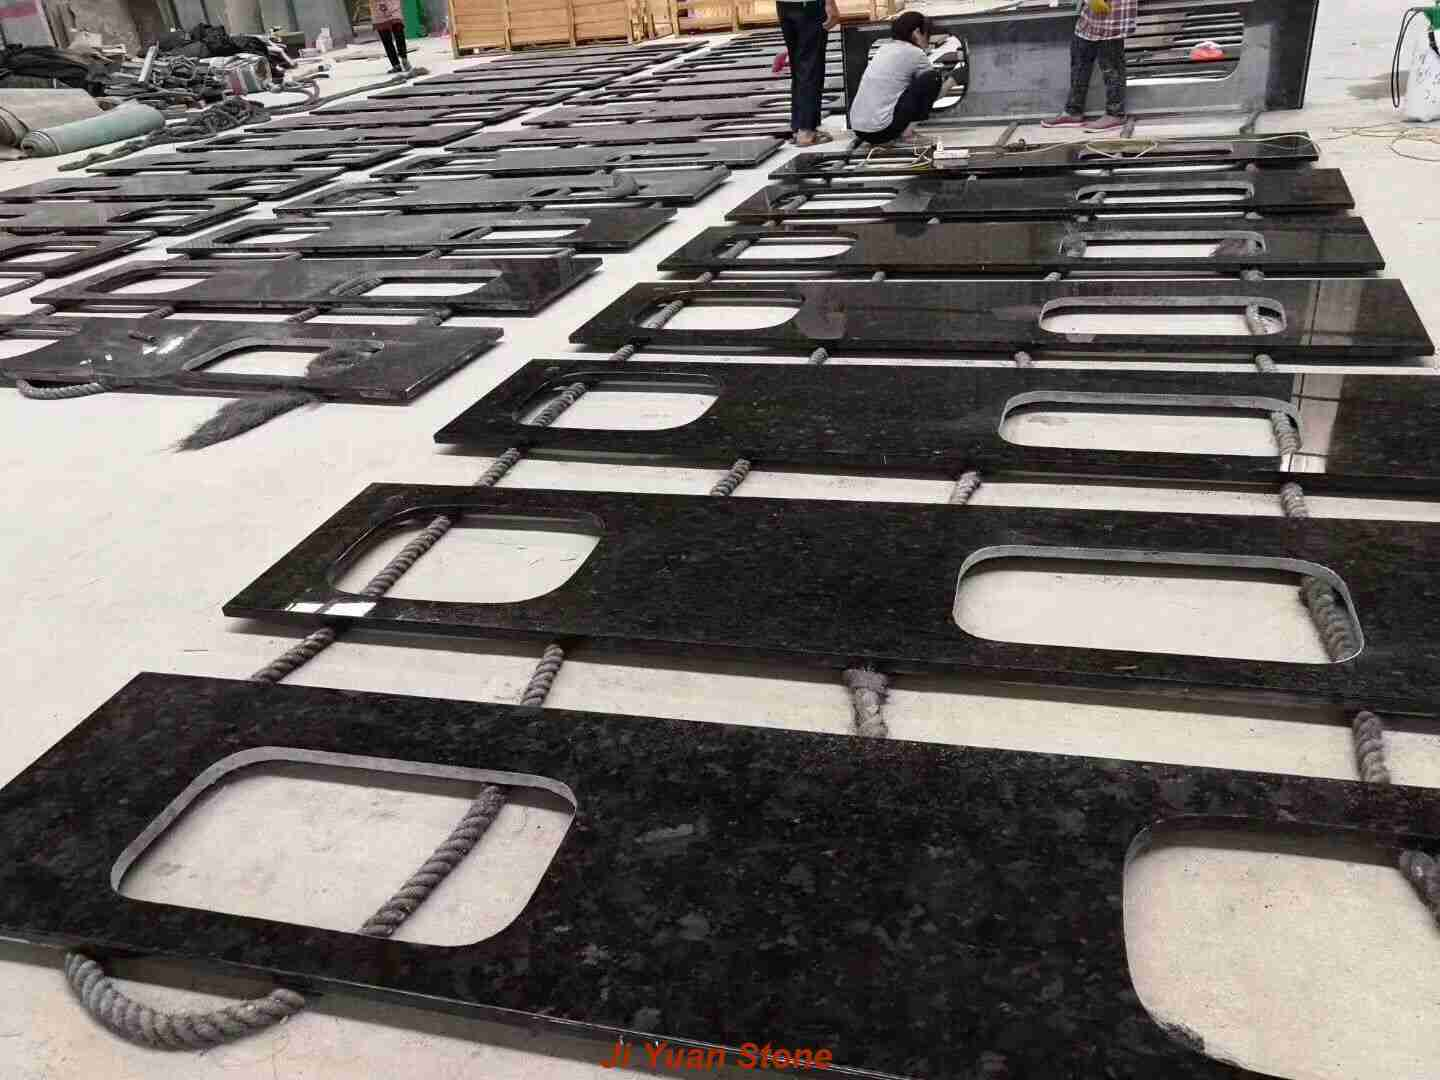 Nero angola granite,angola black,angola black leather granite,black angola,angola stone,black granite countertops,impala black granite,black granite colors